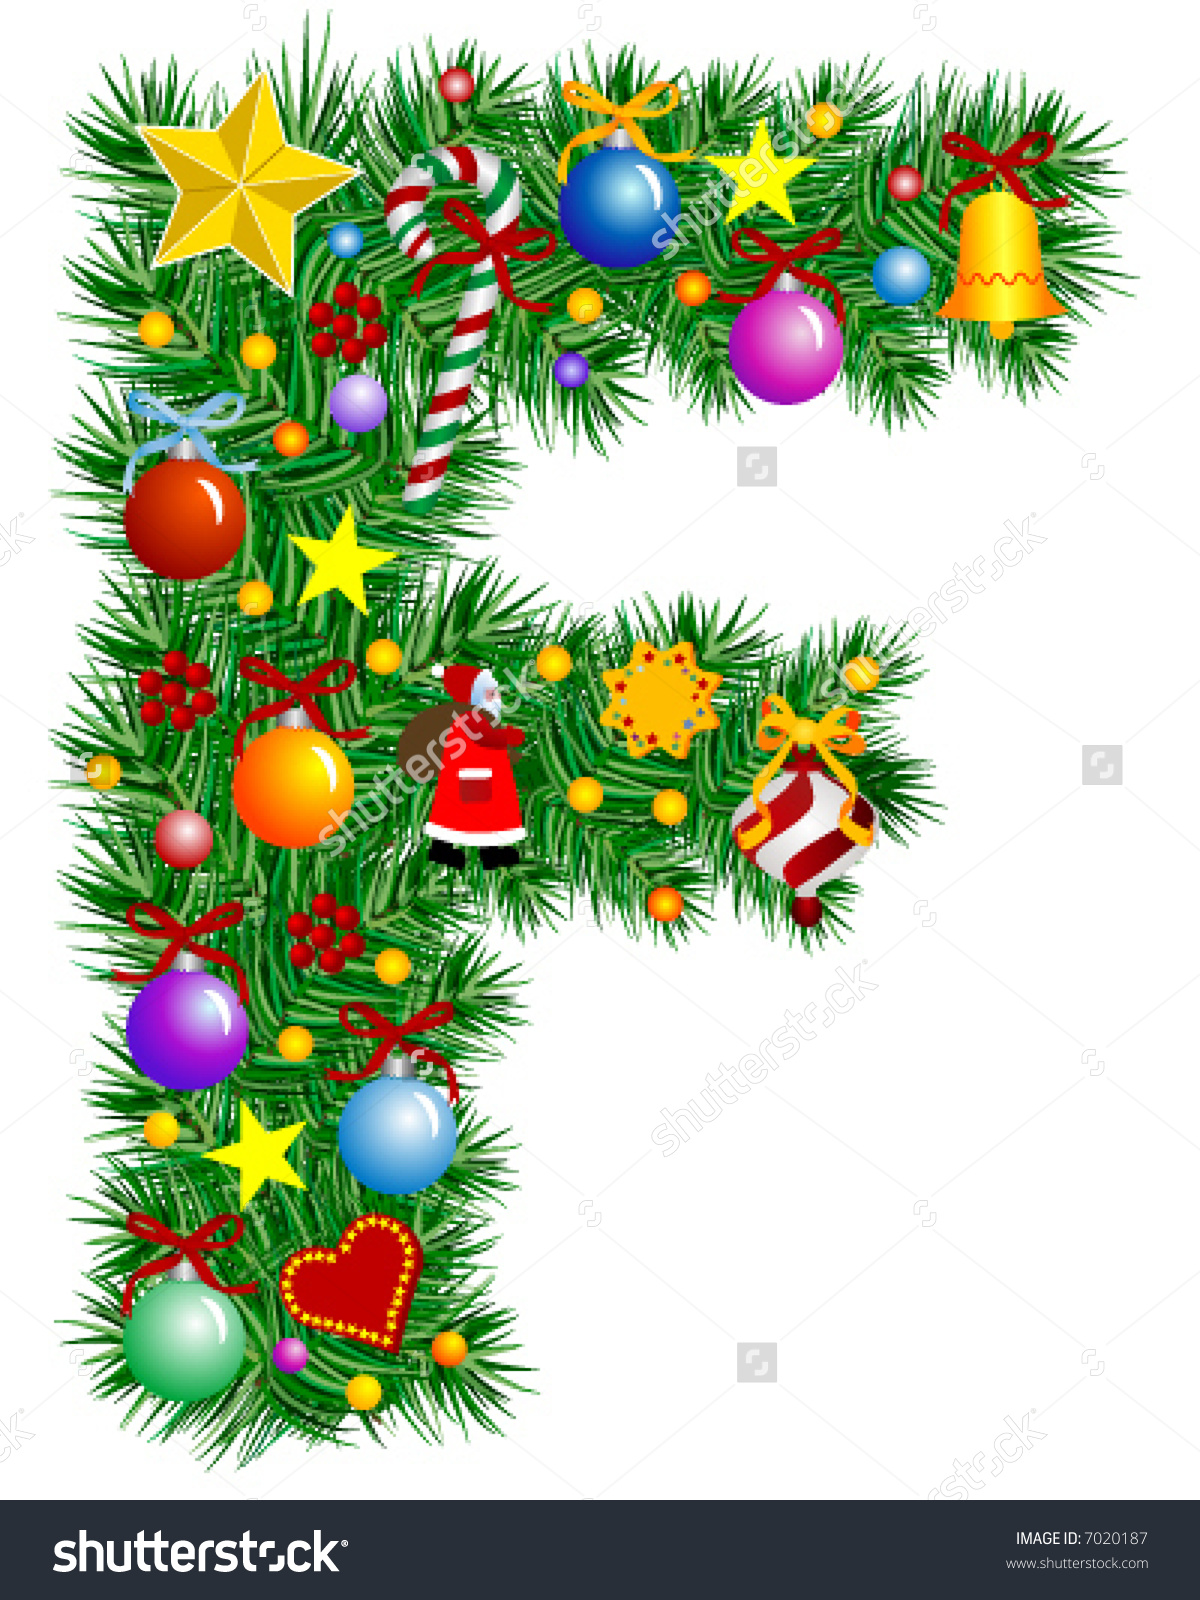 Christmas clip art alphabet letters transparent download Letter F Christmas Tree Decoration Alphabet Stock Vector 7020187 ... transparent download